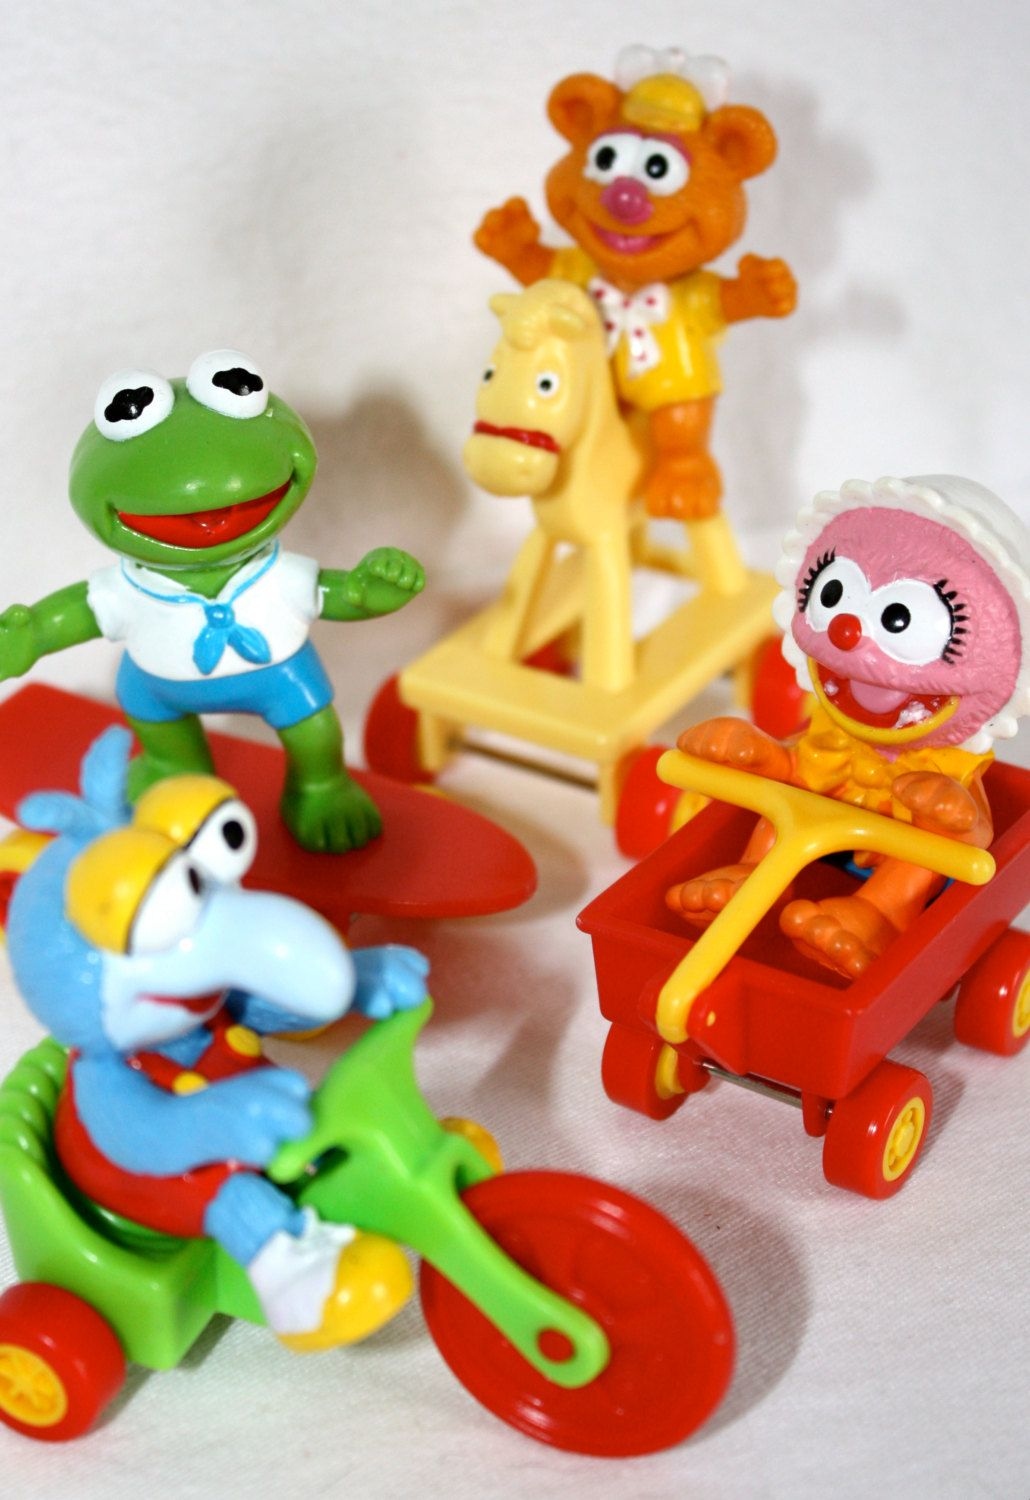 1980s Jim Hensons The Muppet Babies McDonalds Happy Meal Toys